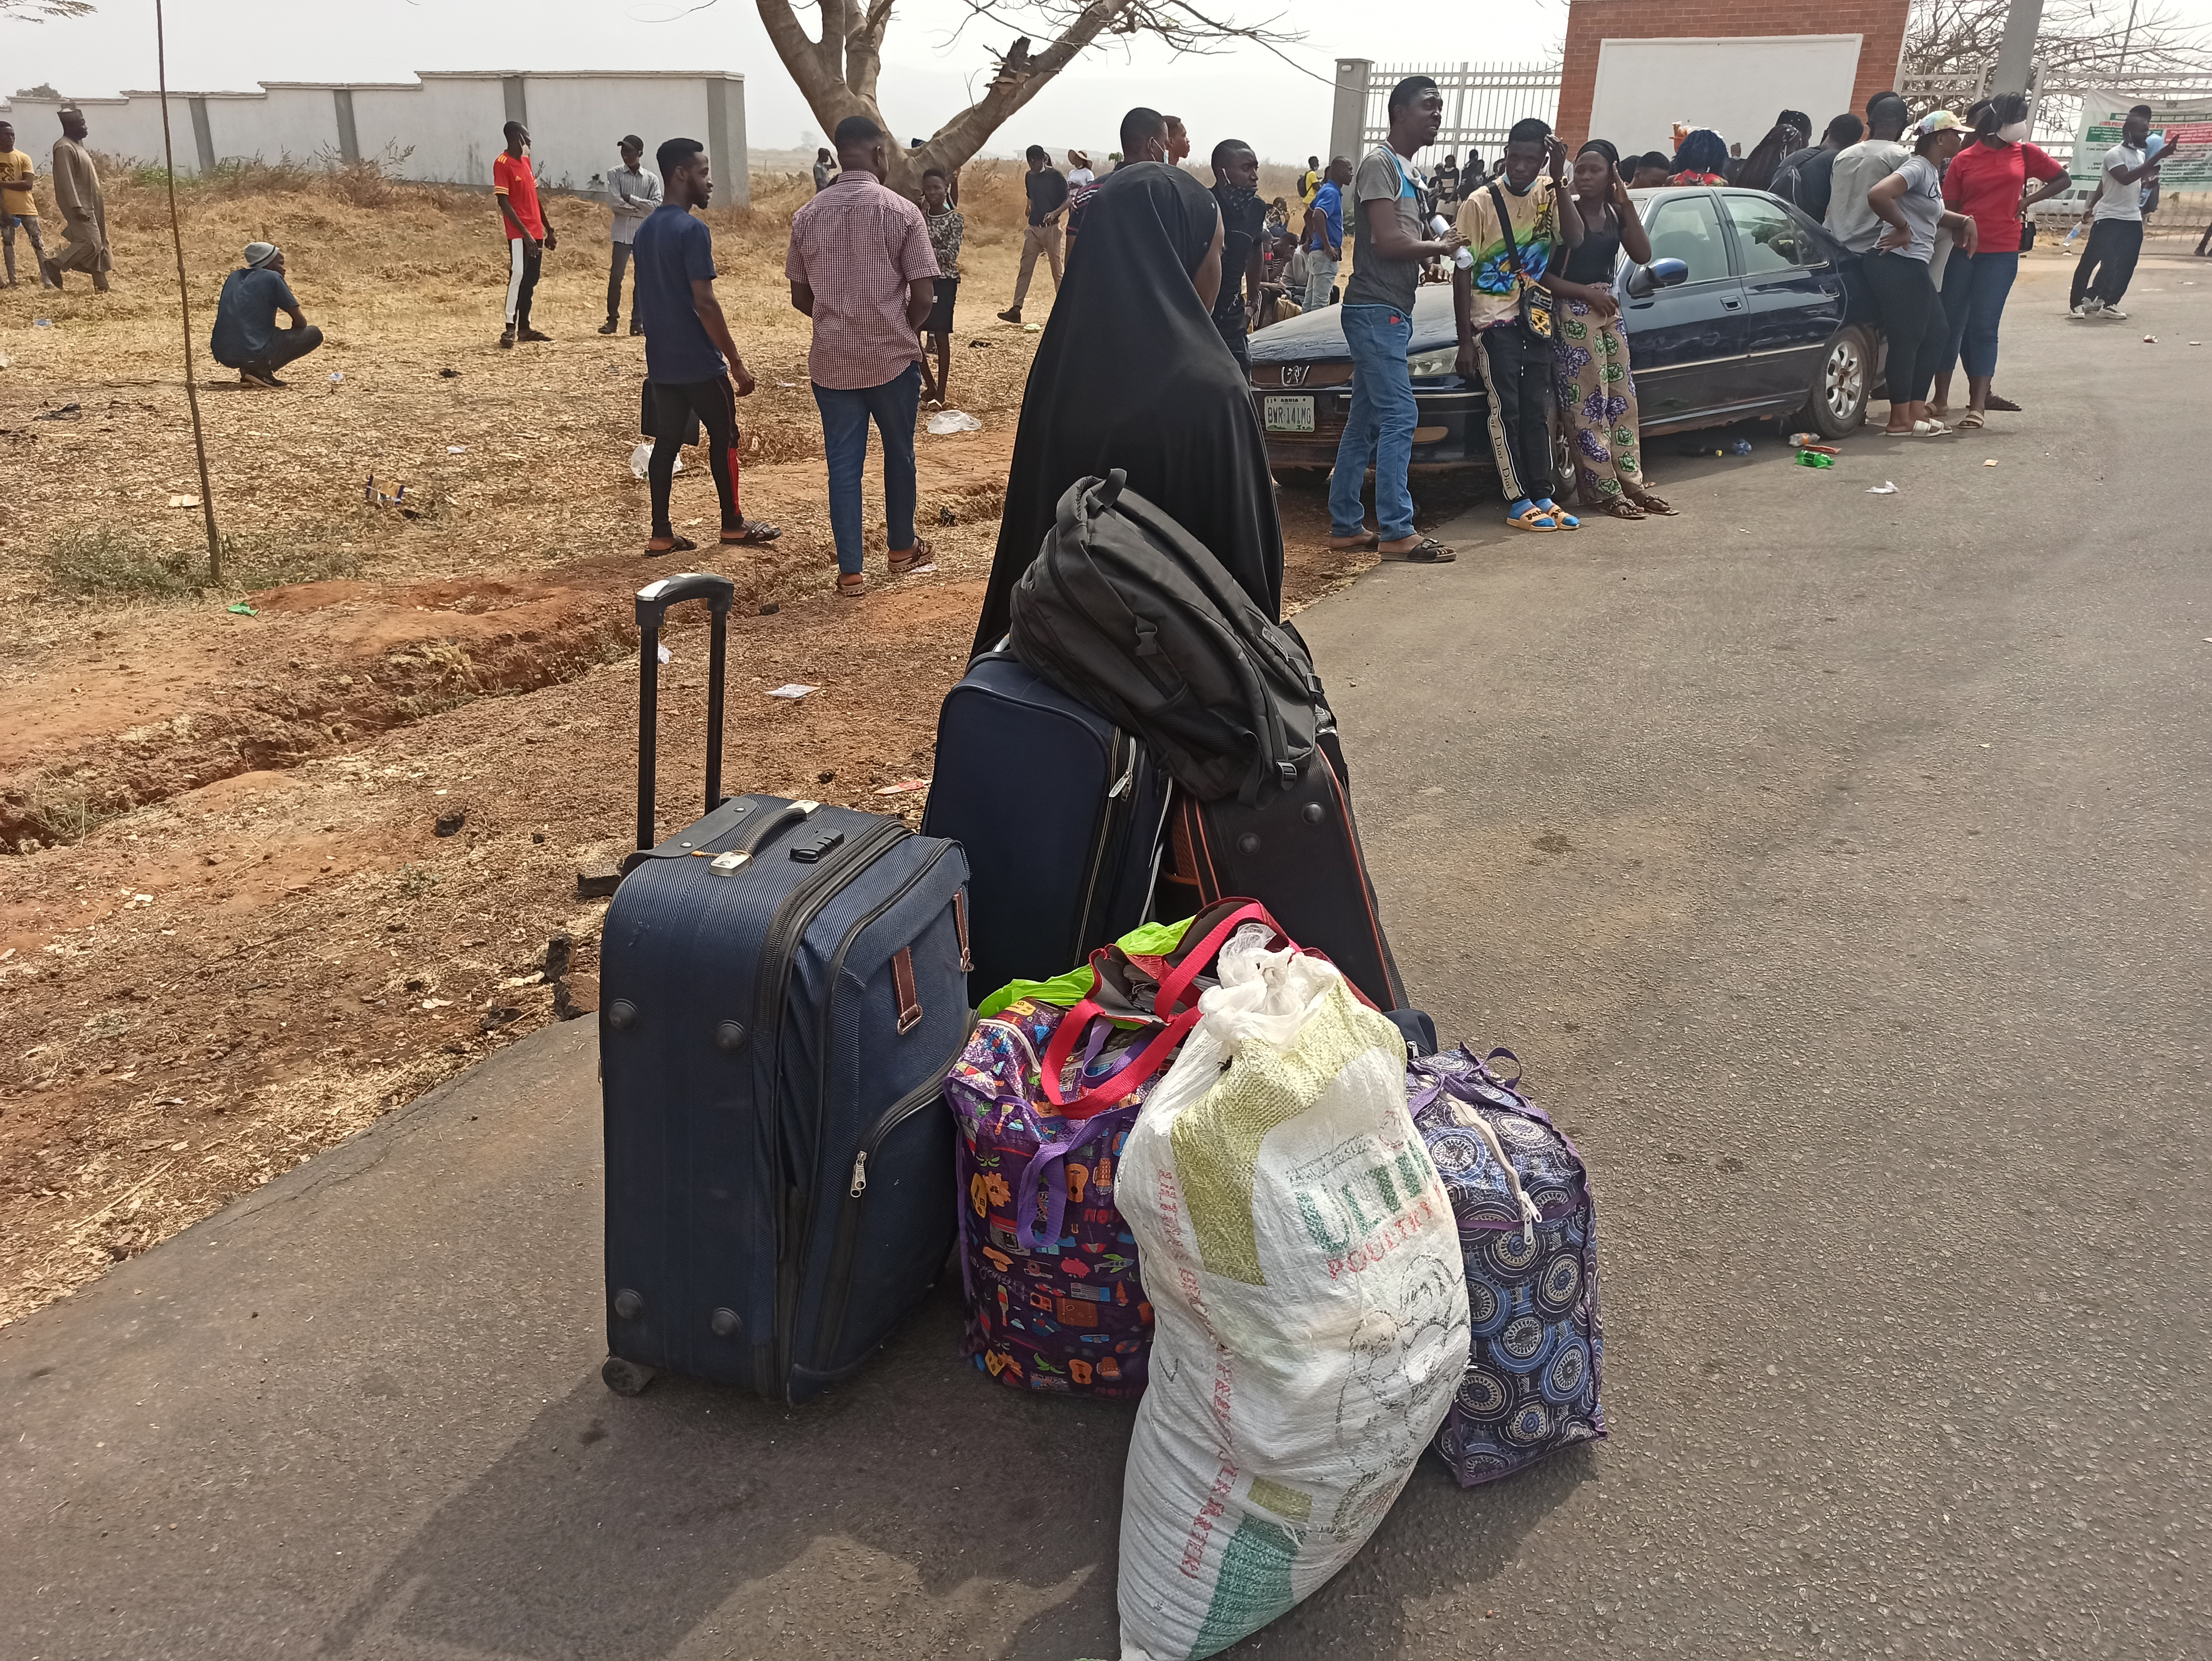 Belongings of stranded students at the uniabuja peaceful protest